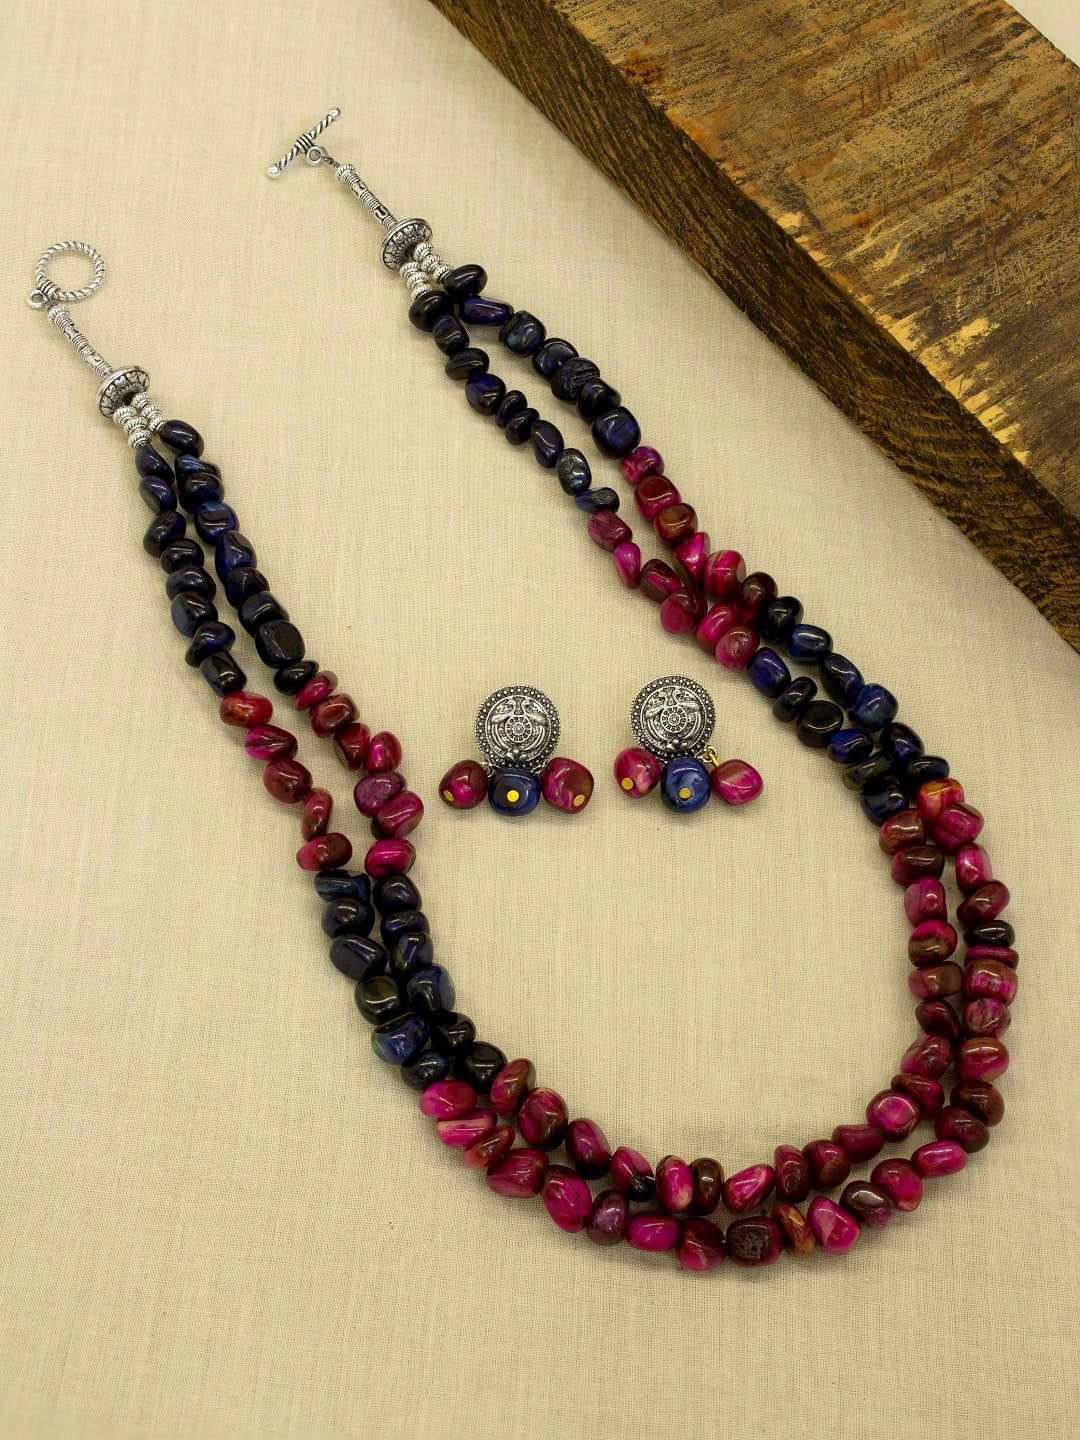 Silver Plated Two Layered Dark Blue And pink Color Semi Precious Chrysicolla Beads Long Necklace Set-JEWEL BOX-Necklace Set